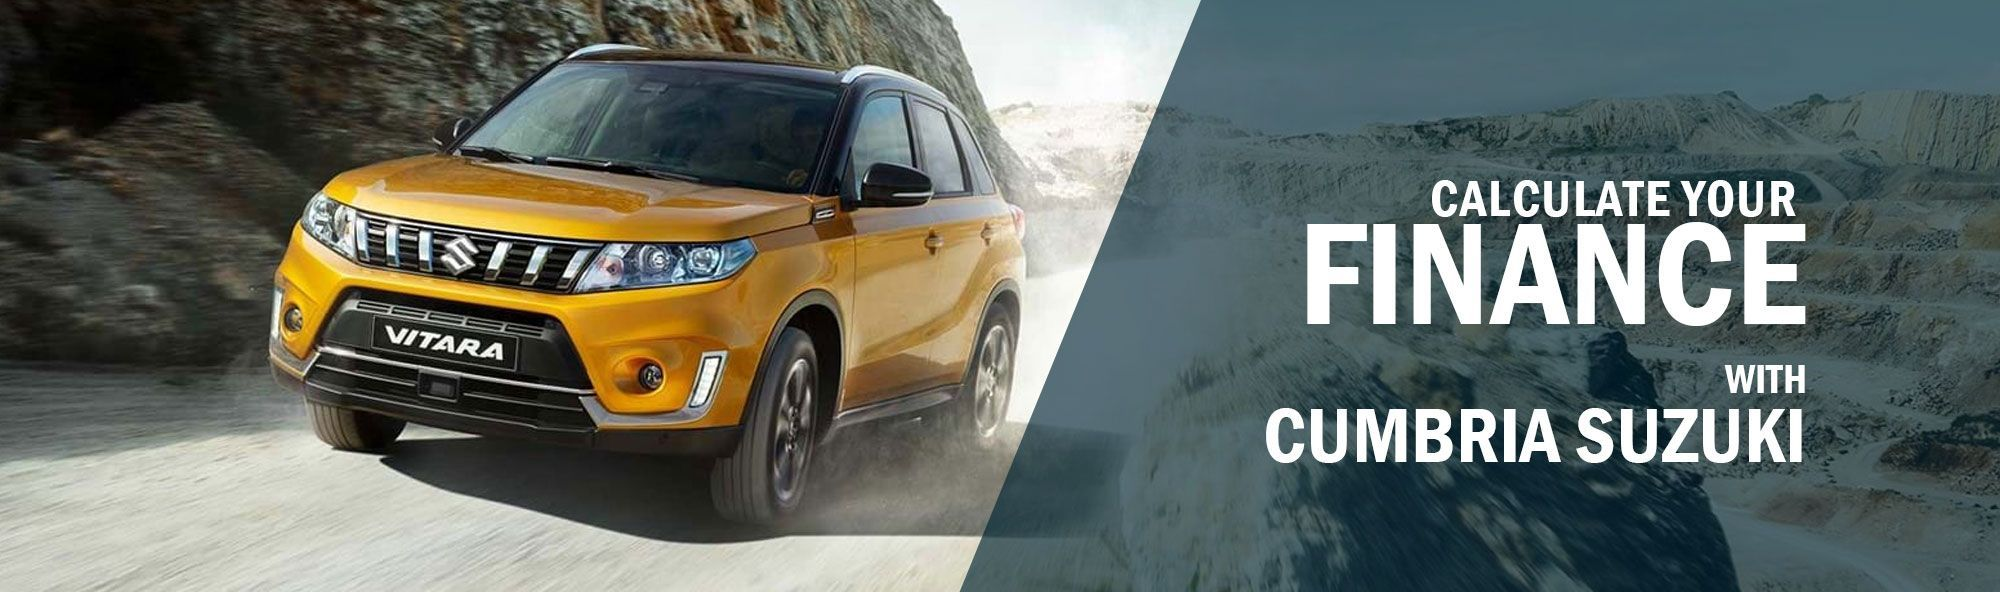 Finance From Cumbria Suzuki